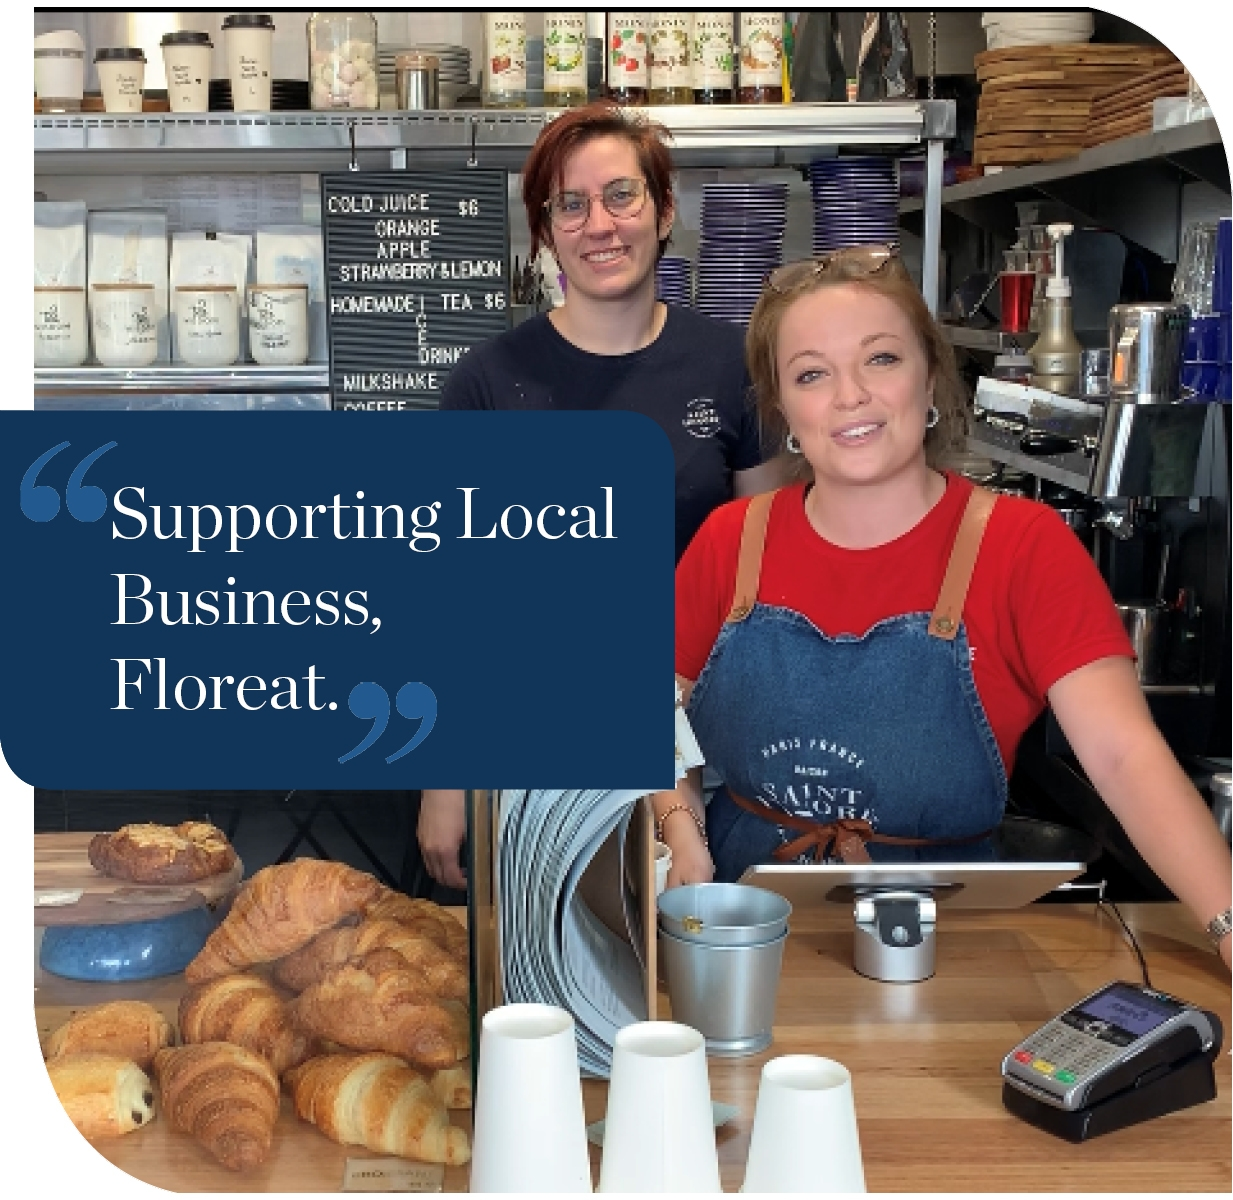 Supporting Local Business | Floreat.